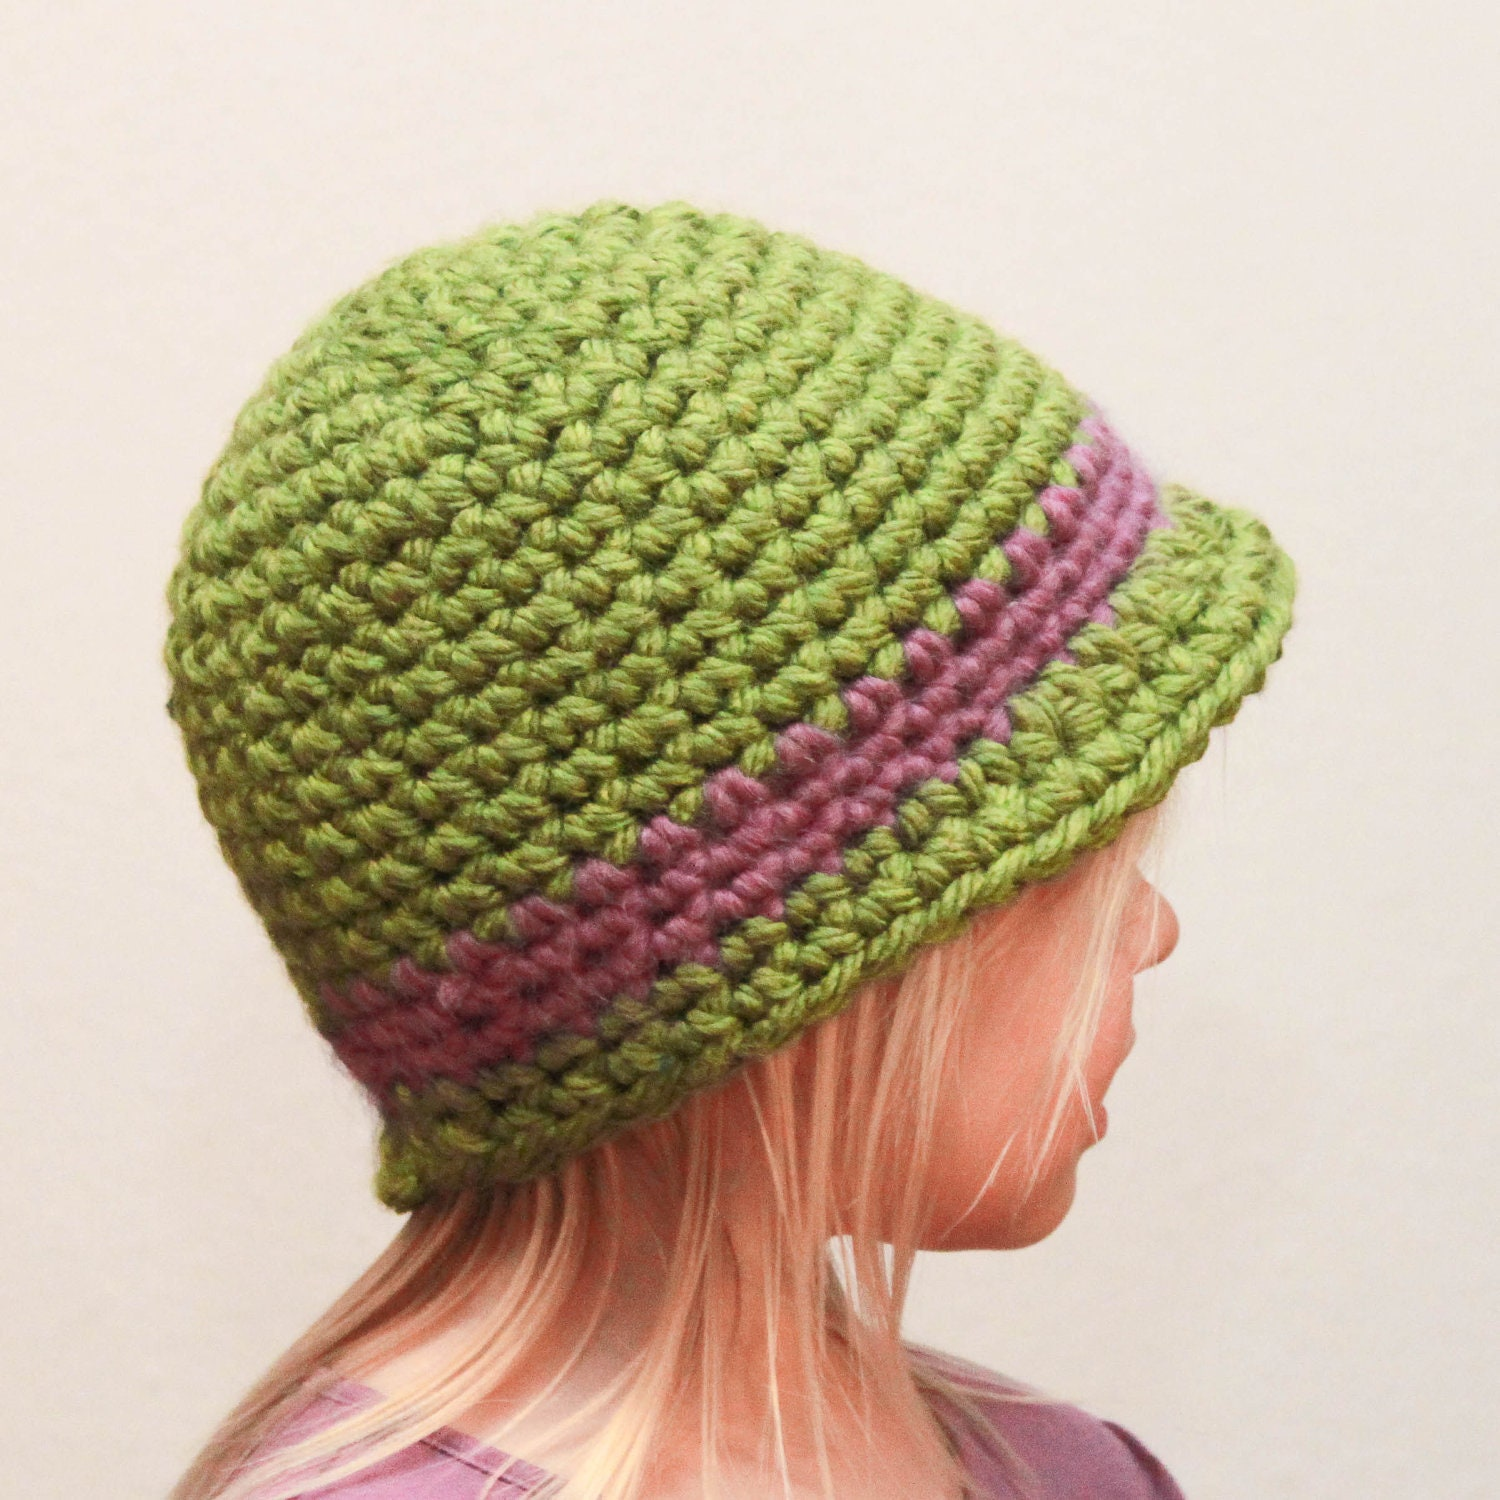 Crochet Cloche Hat Brim Pattern : Crochet Hat Pattern Cloche Brim Hat Baby Adult by Mamachee